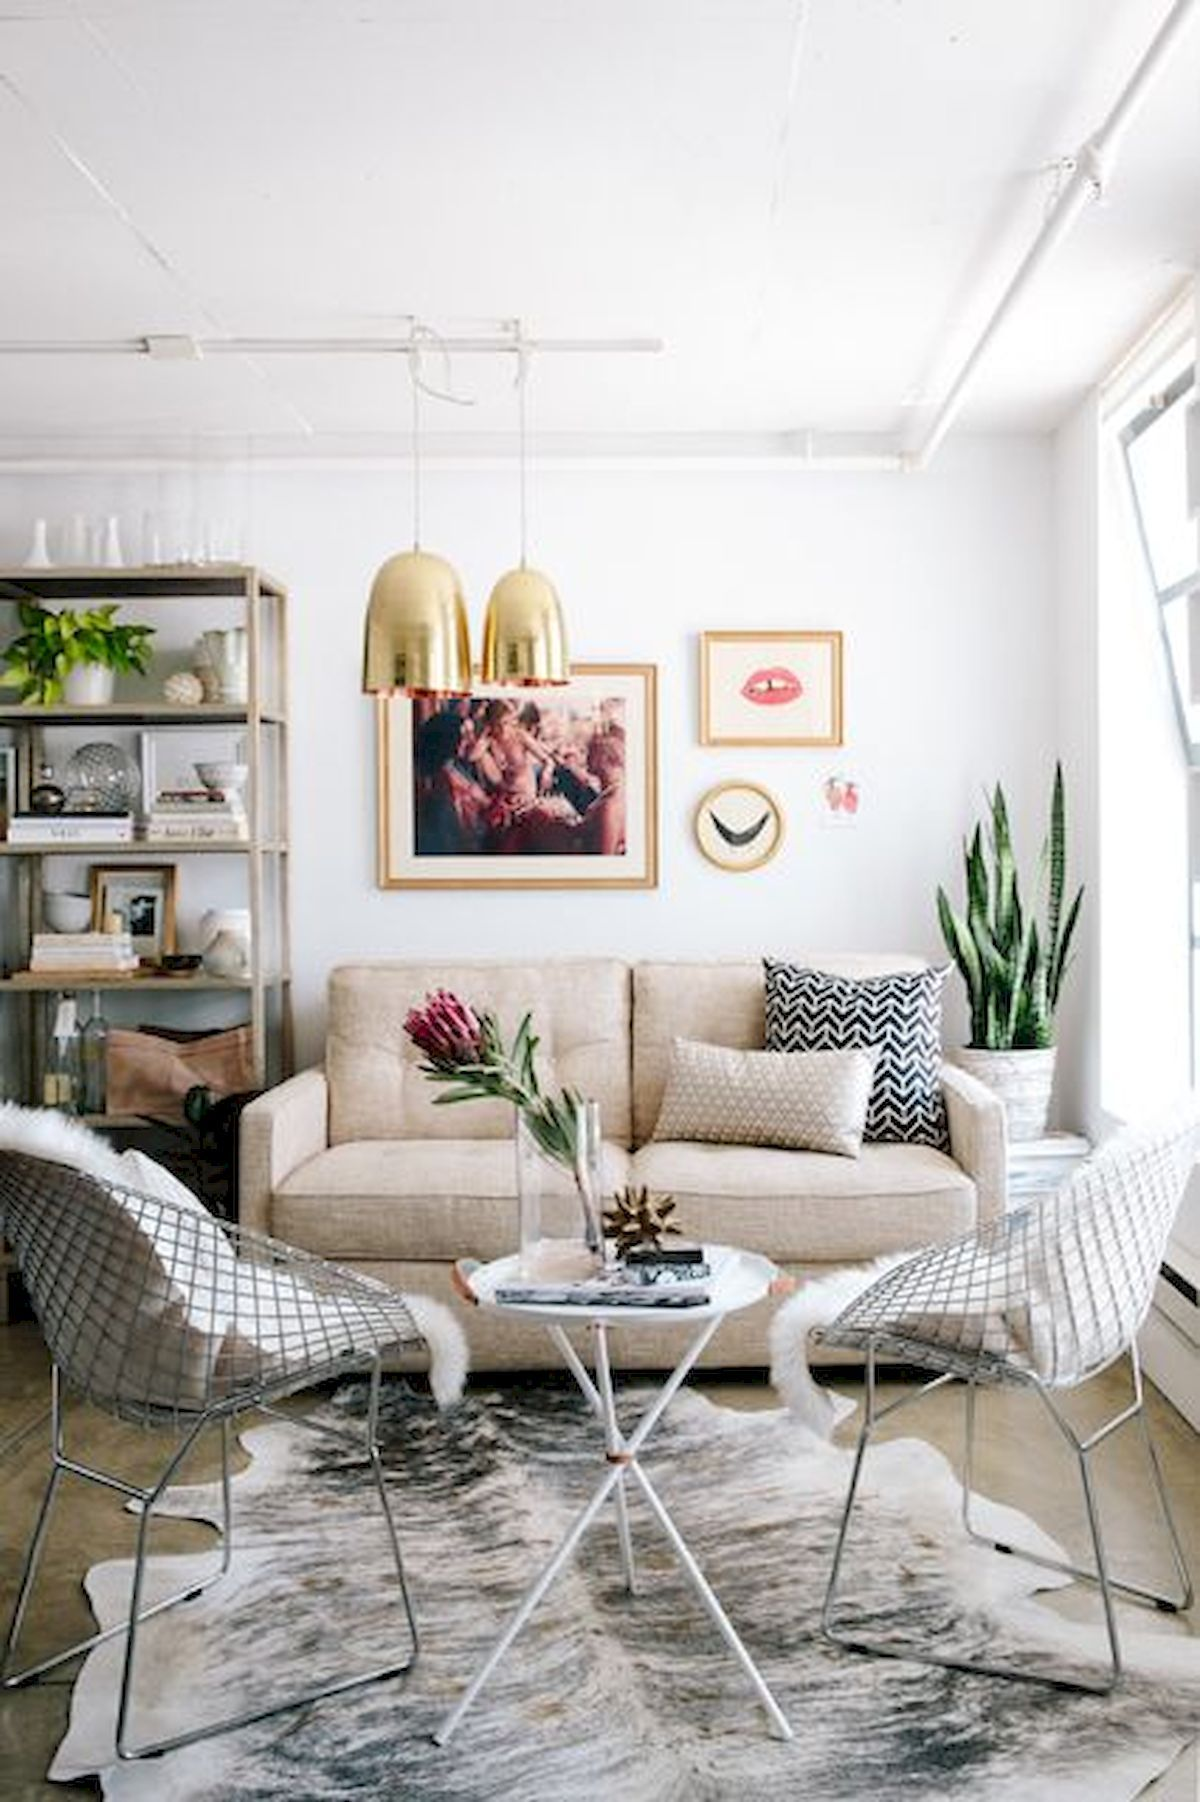 50 Small Living Room Ideas: 50+ Beautiful Small Living Room Decor Ideas And Remodel